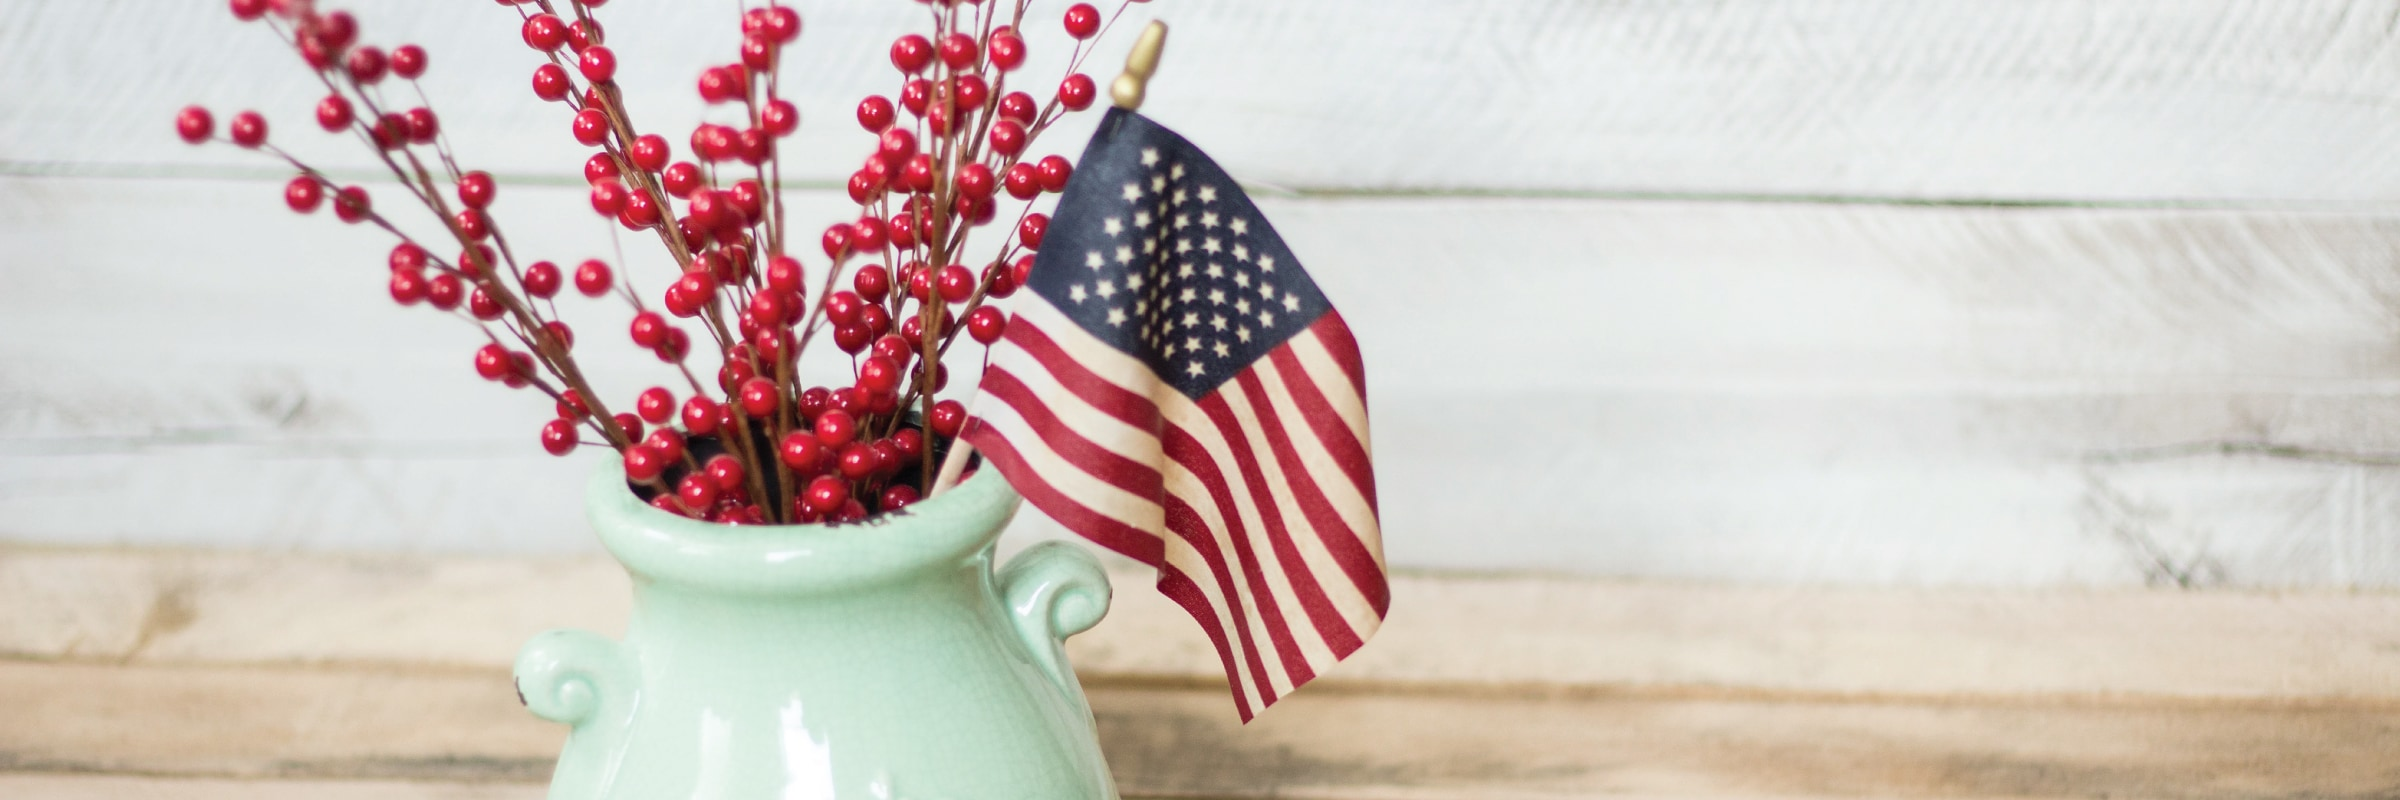 Slider-Image-2-Flag-in-Vase